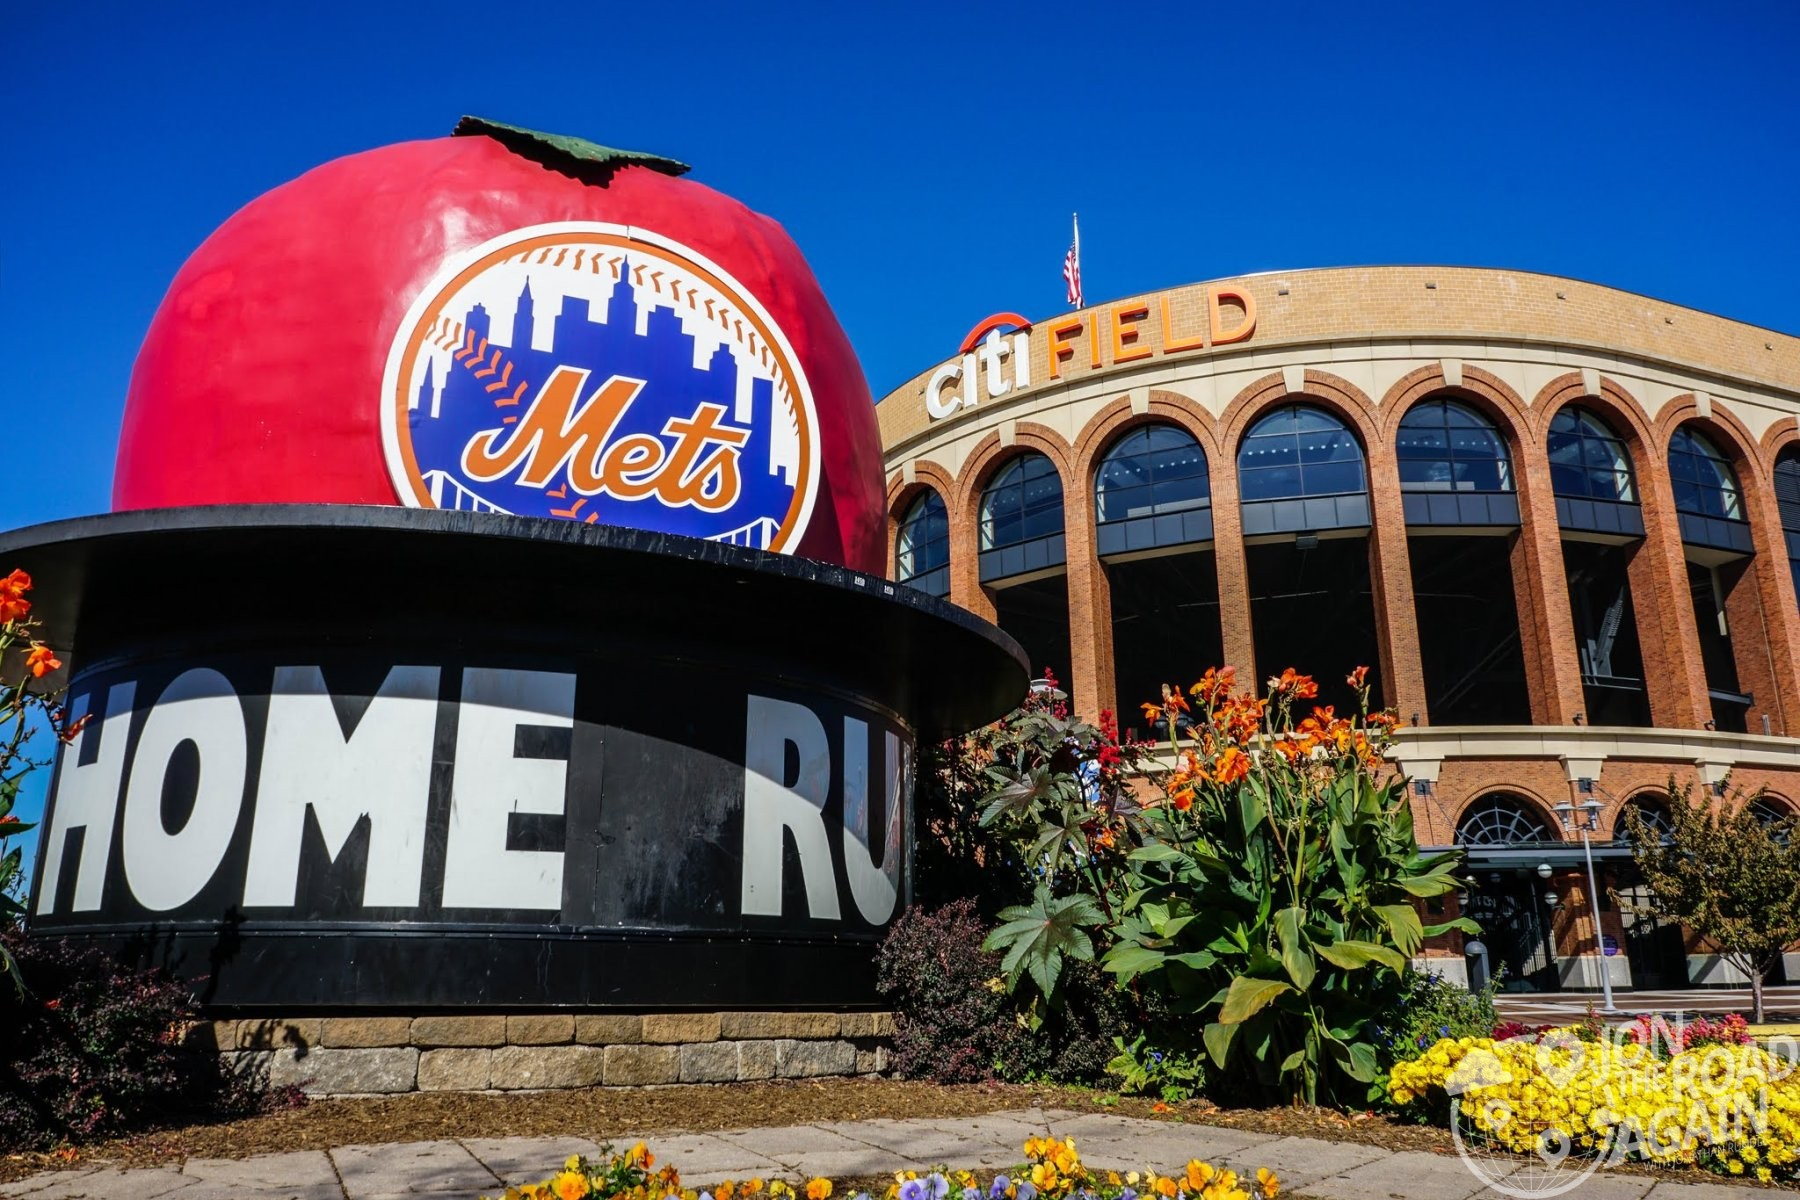 Citi Field - Old Shea Apple